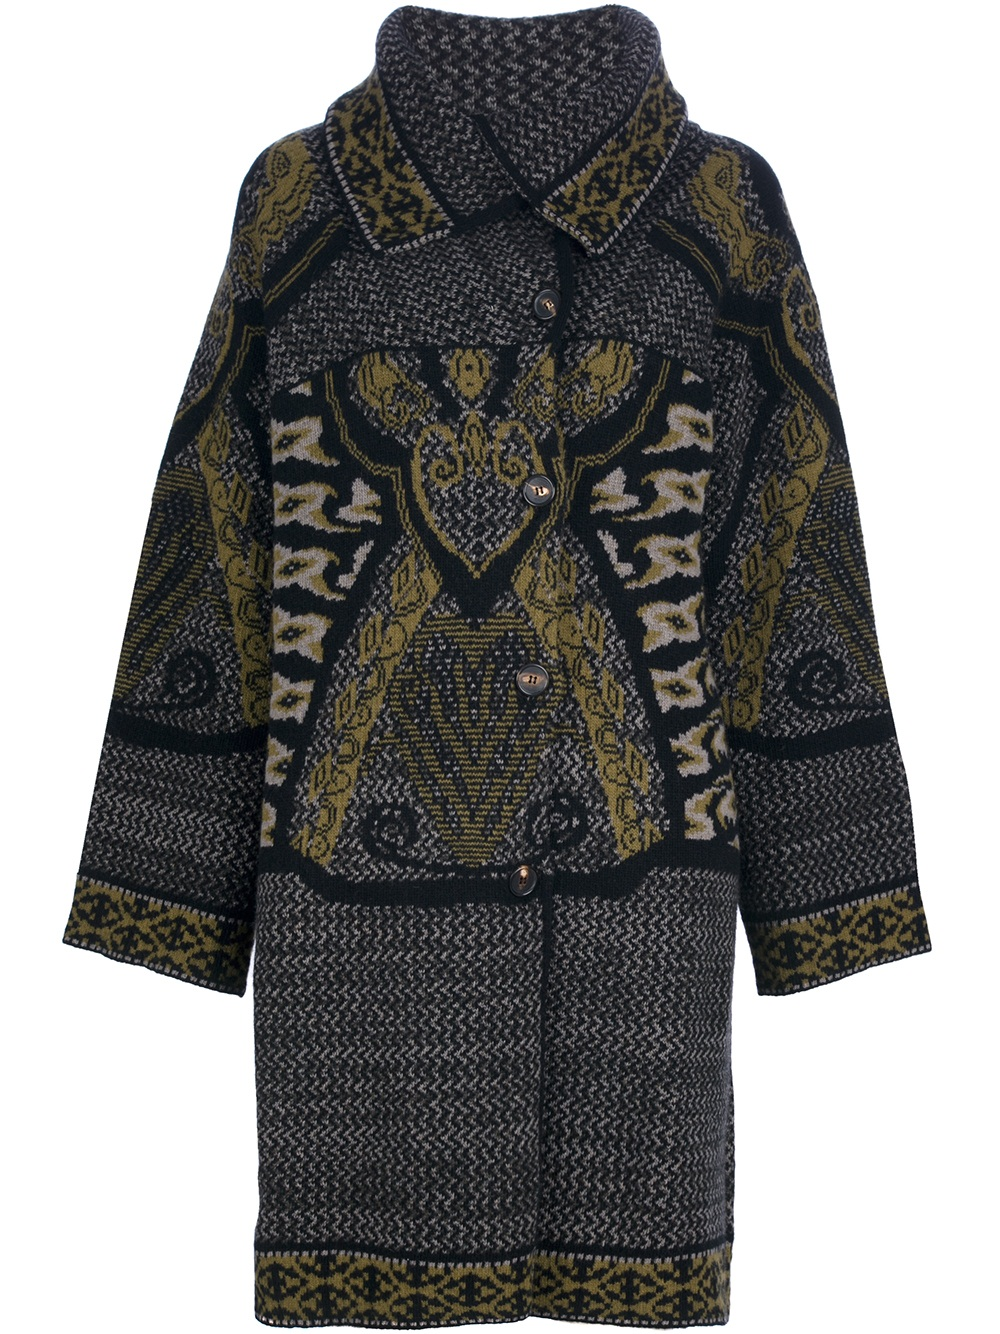 etro knitted coat.jpg